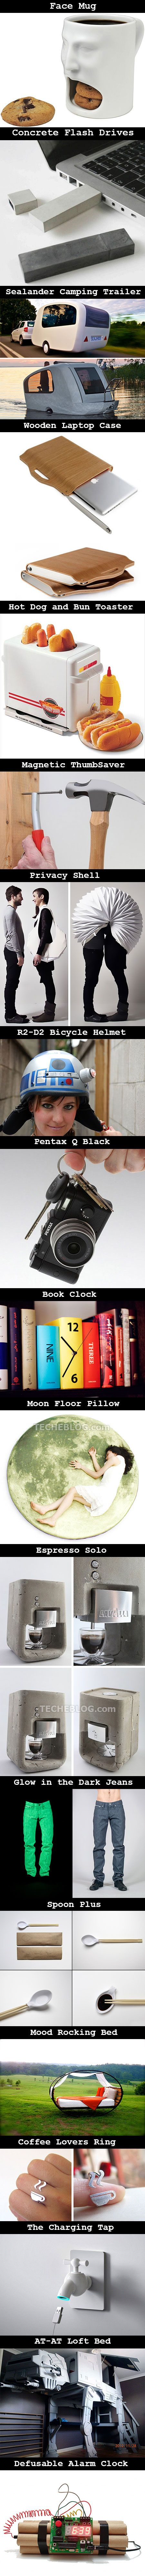 simple yet clever gadgets and accessories.